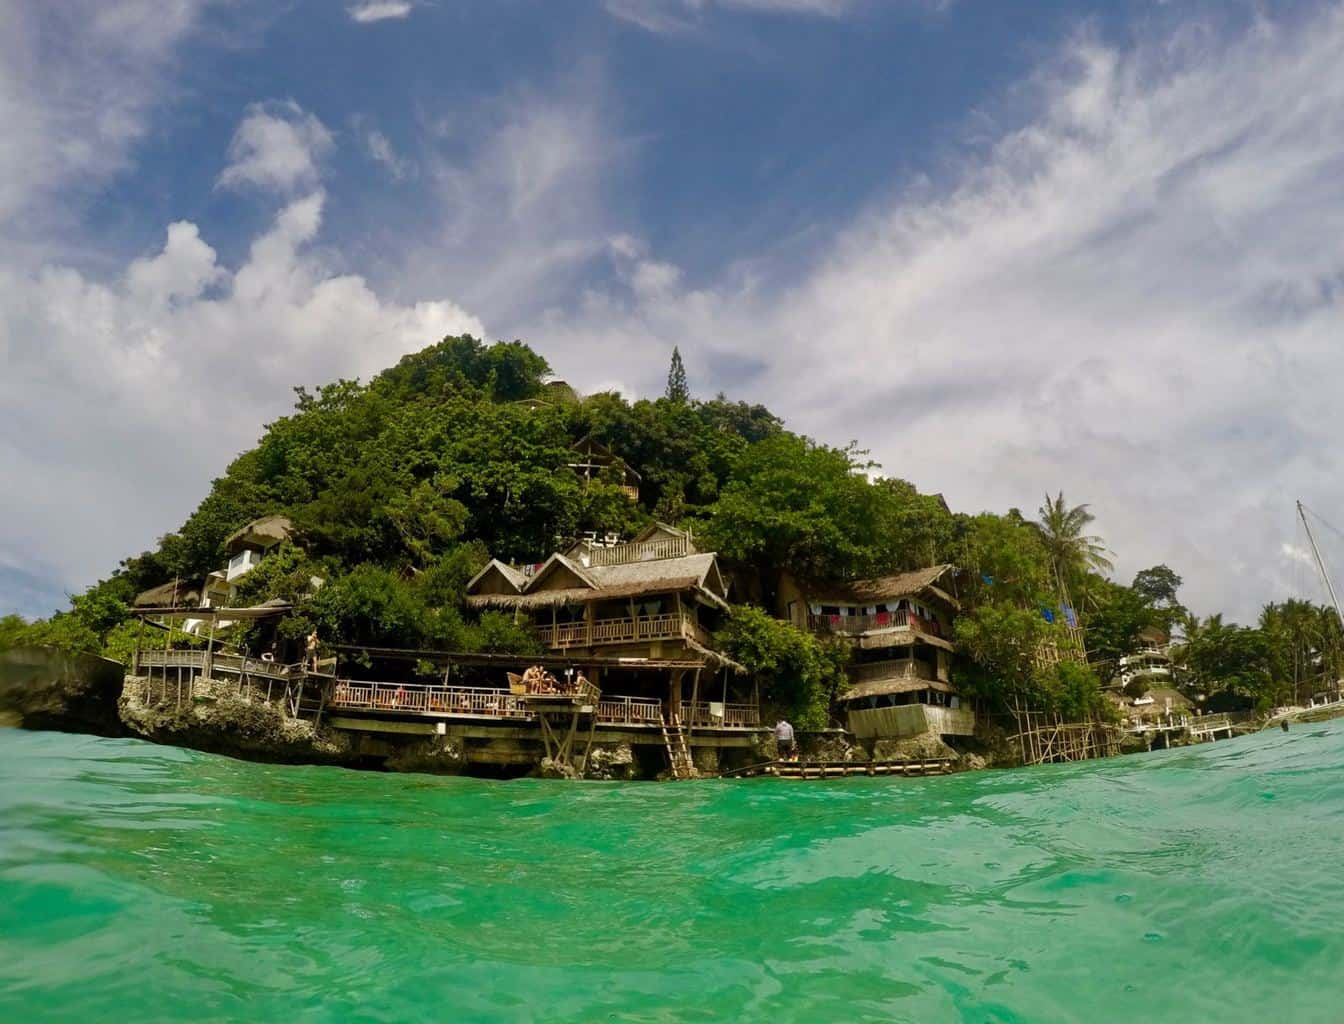 Spider house boracay philippines pictures